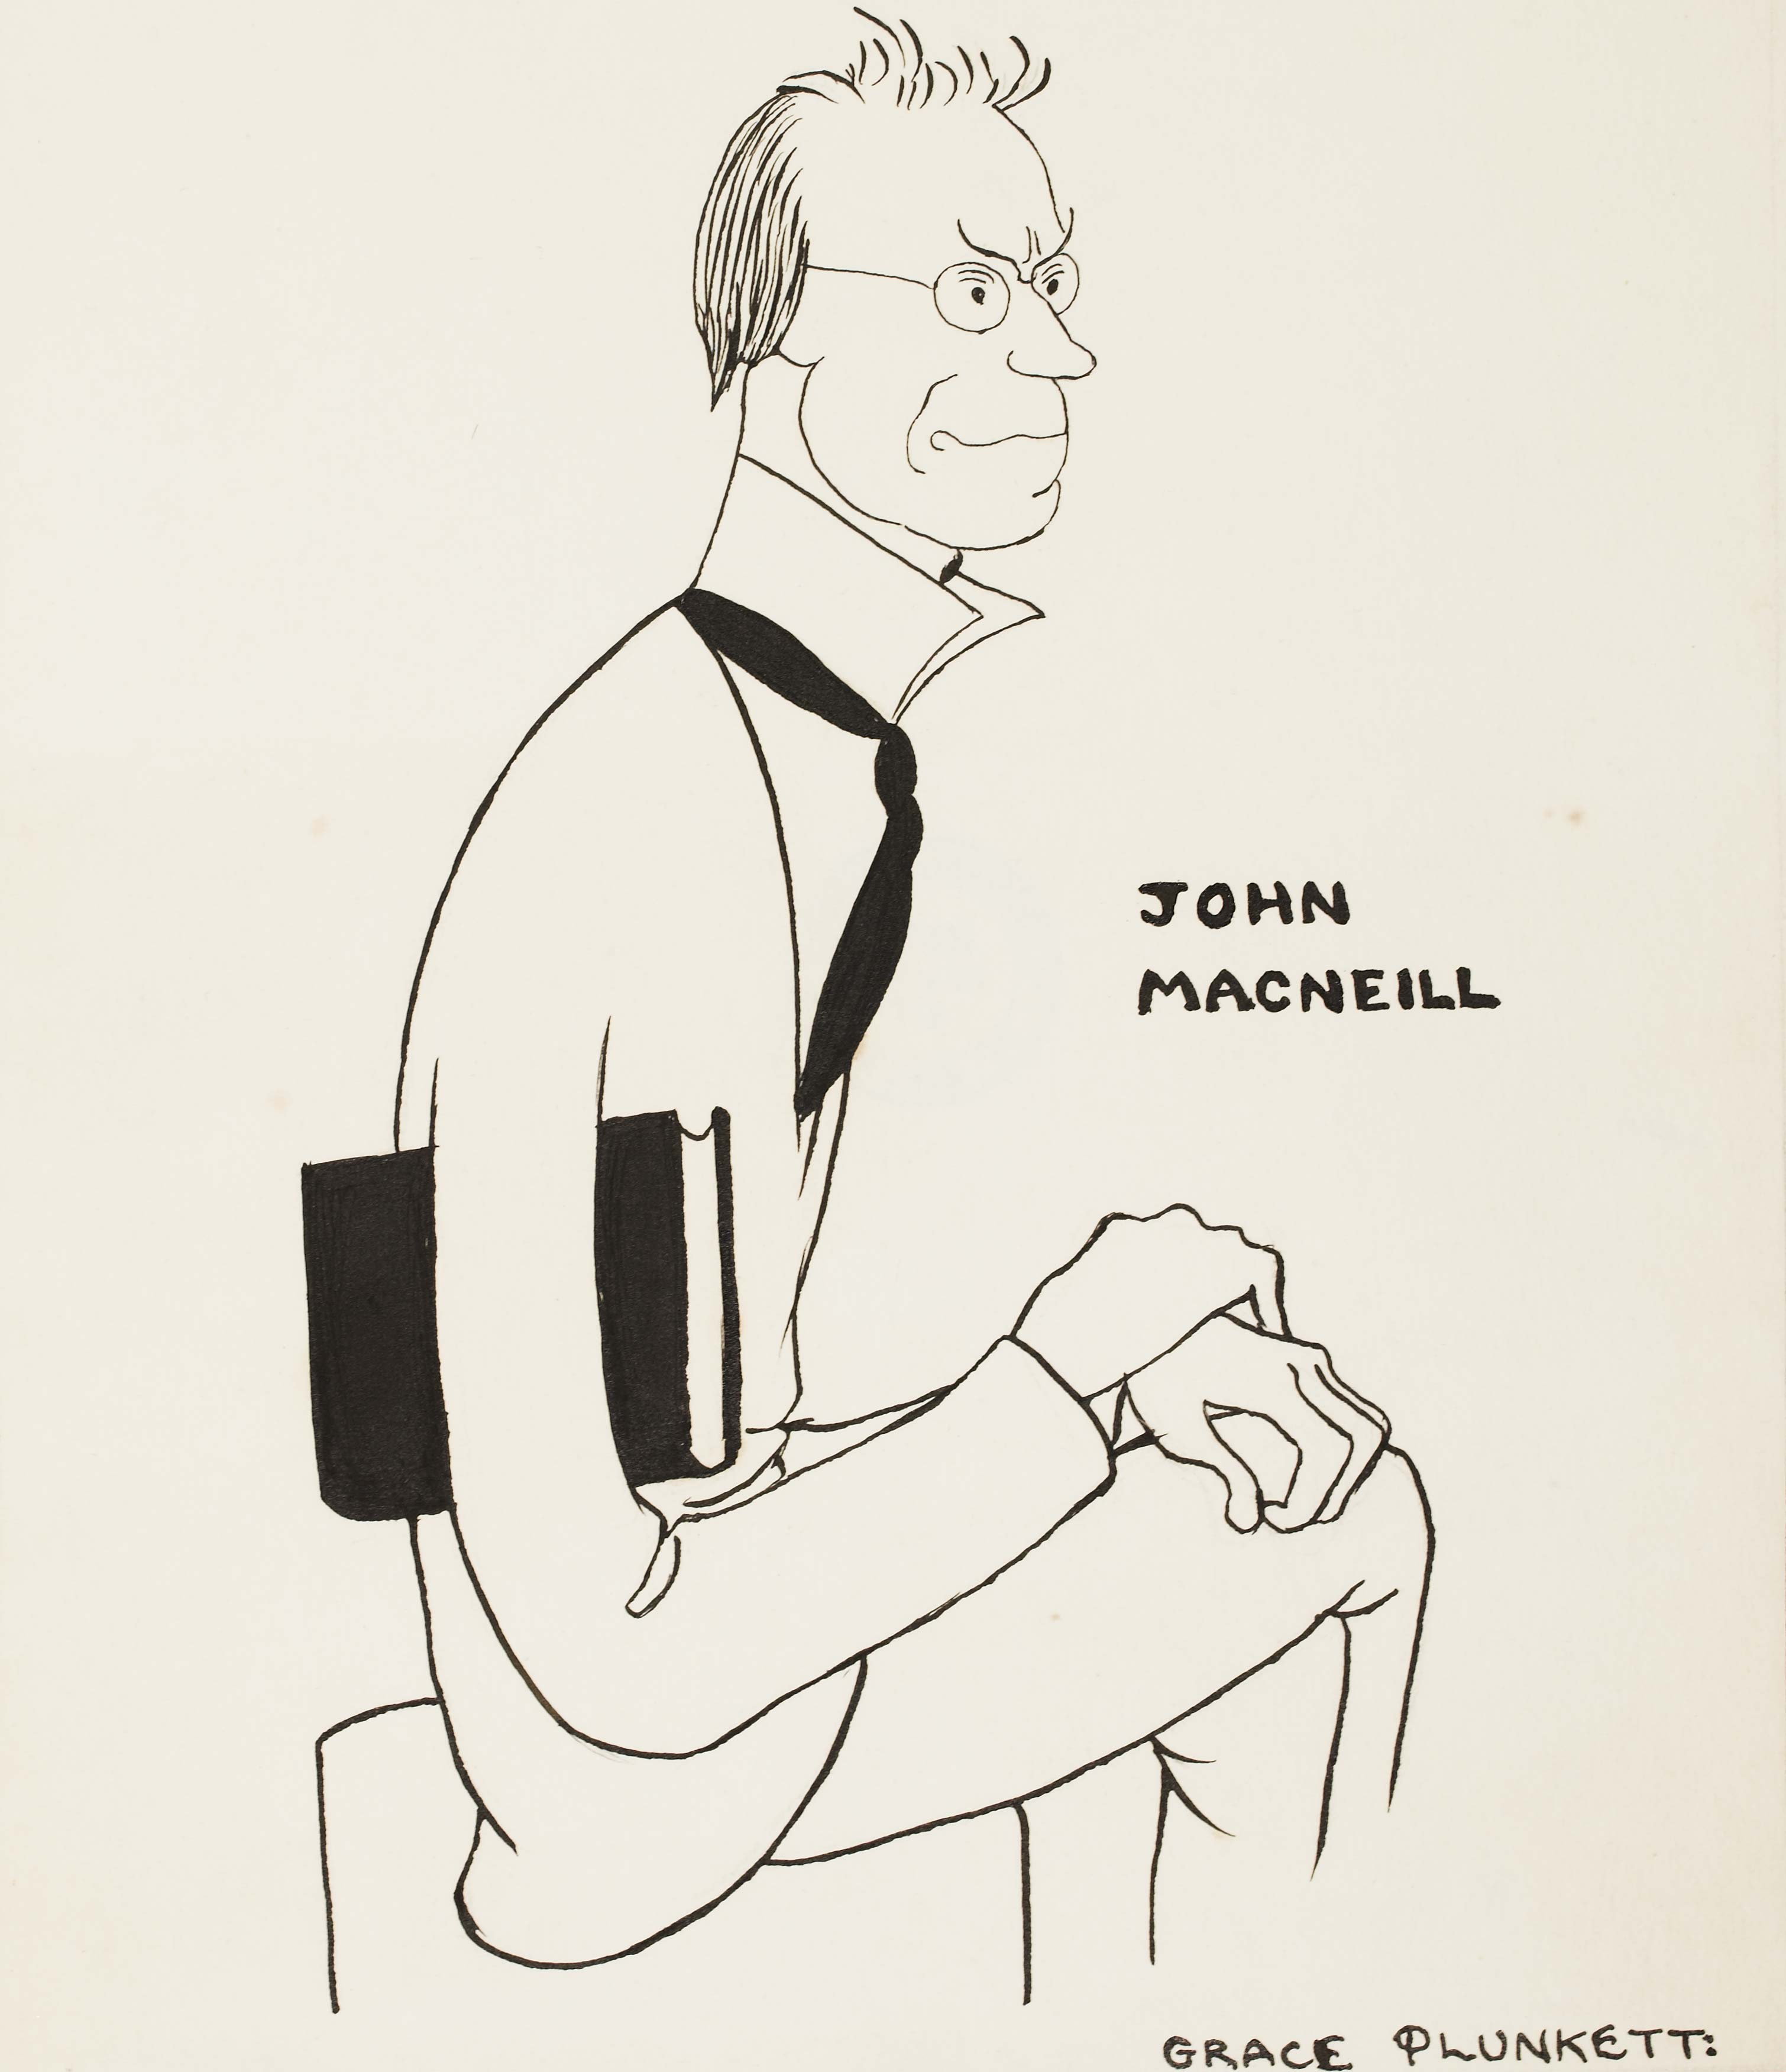 Eoin MacNeill reluctantly commits to one more year as Conradh president